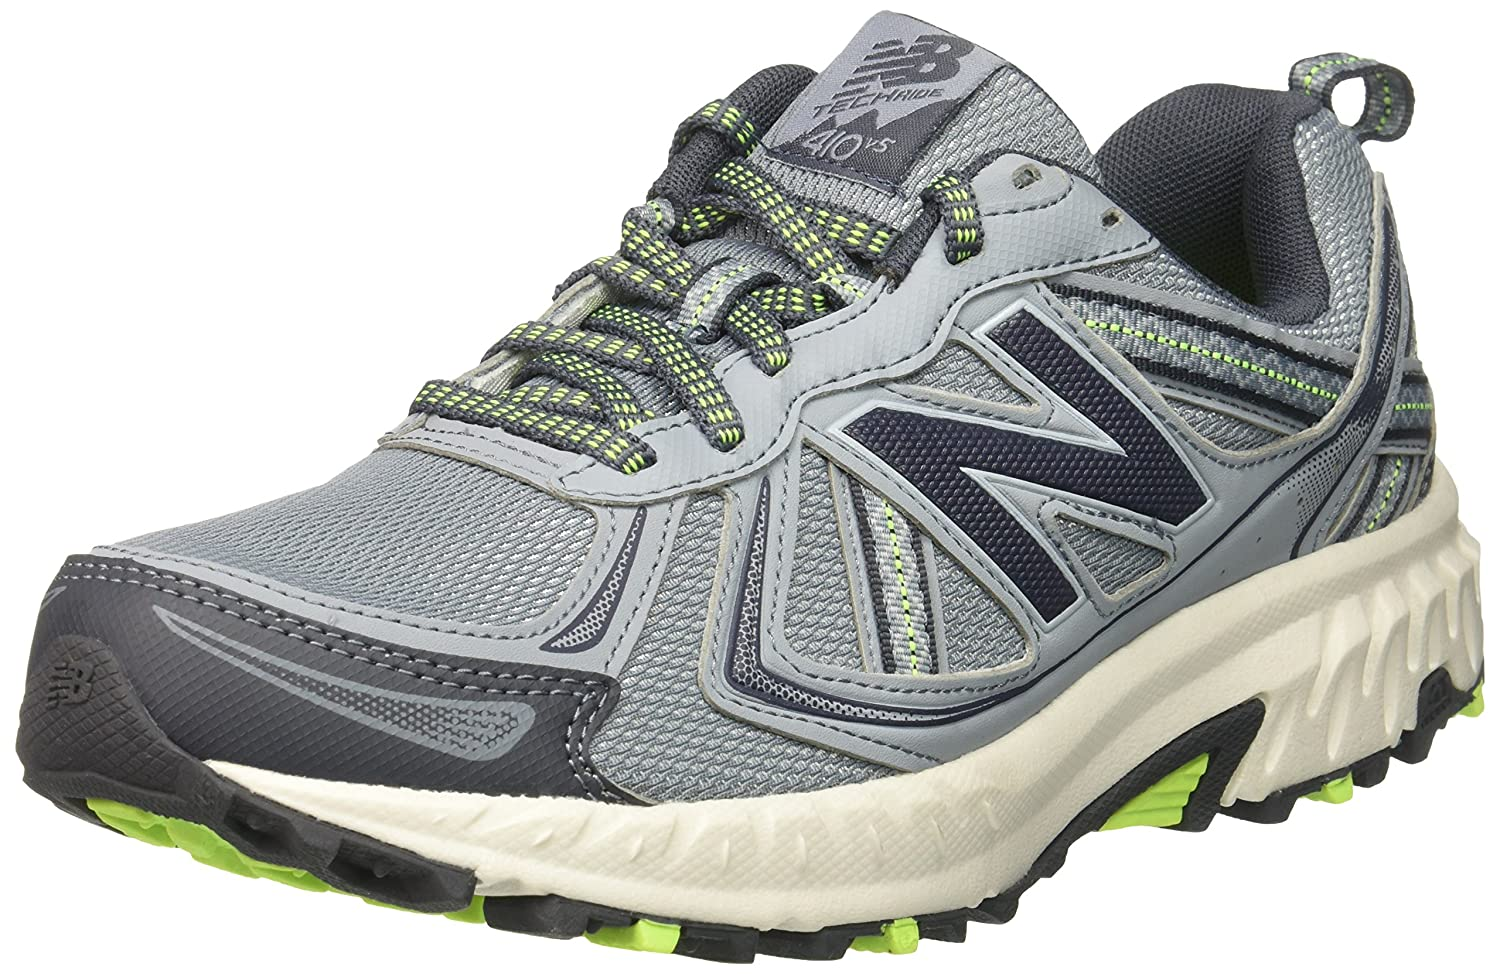 New Balance Women's WT410v5 Cushioning Trail Running Shoe B01LXNZ2VY 5 M US|Light Grey